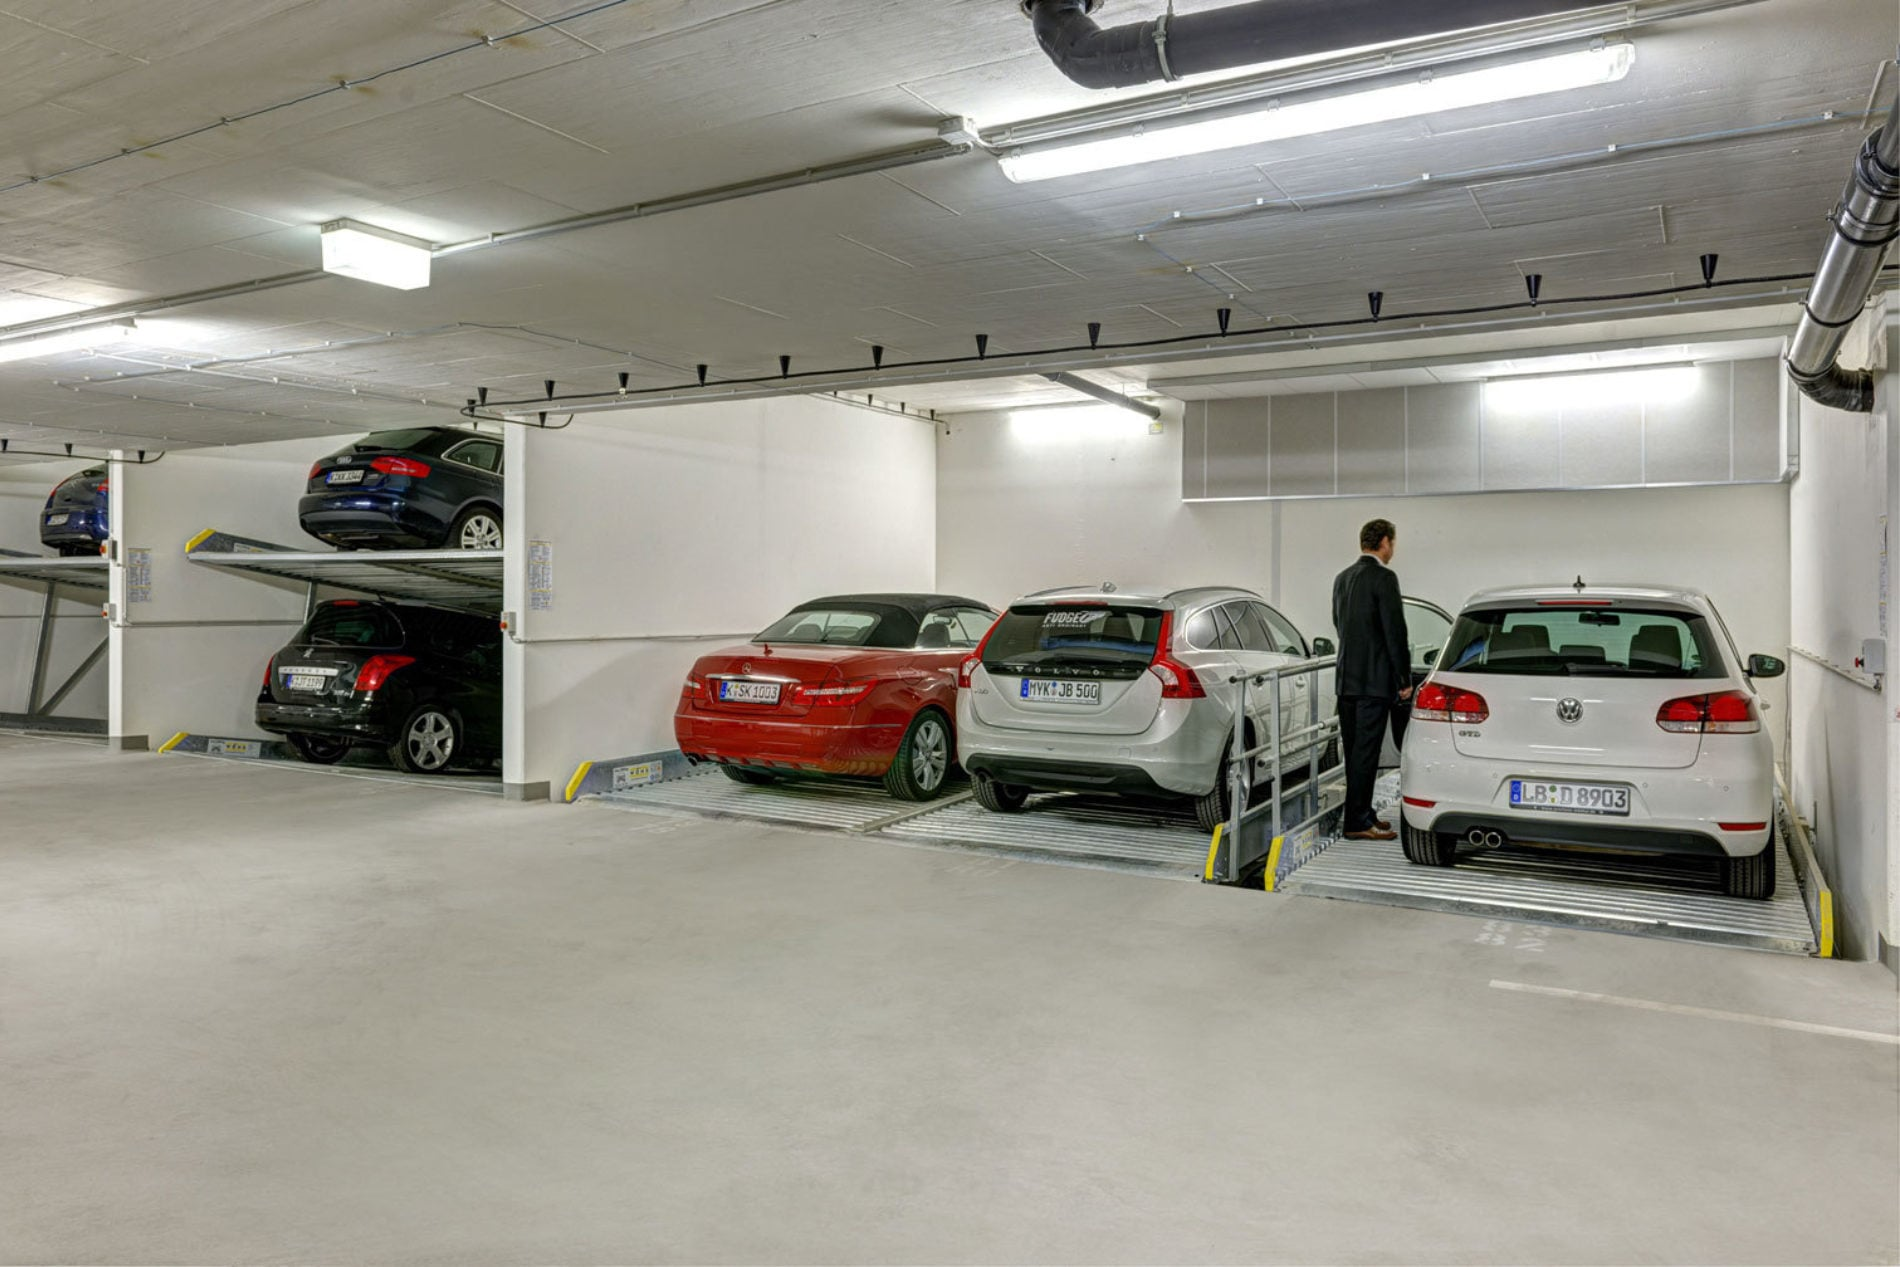 Carparkers Idee 8A